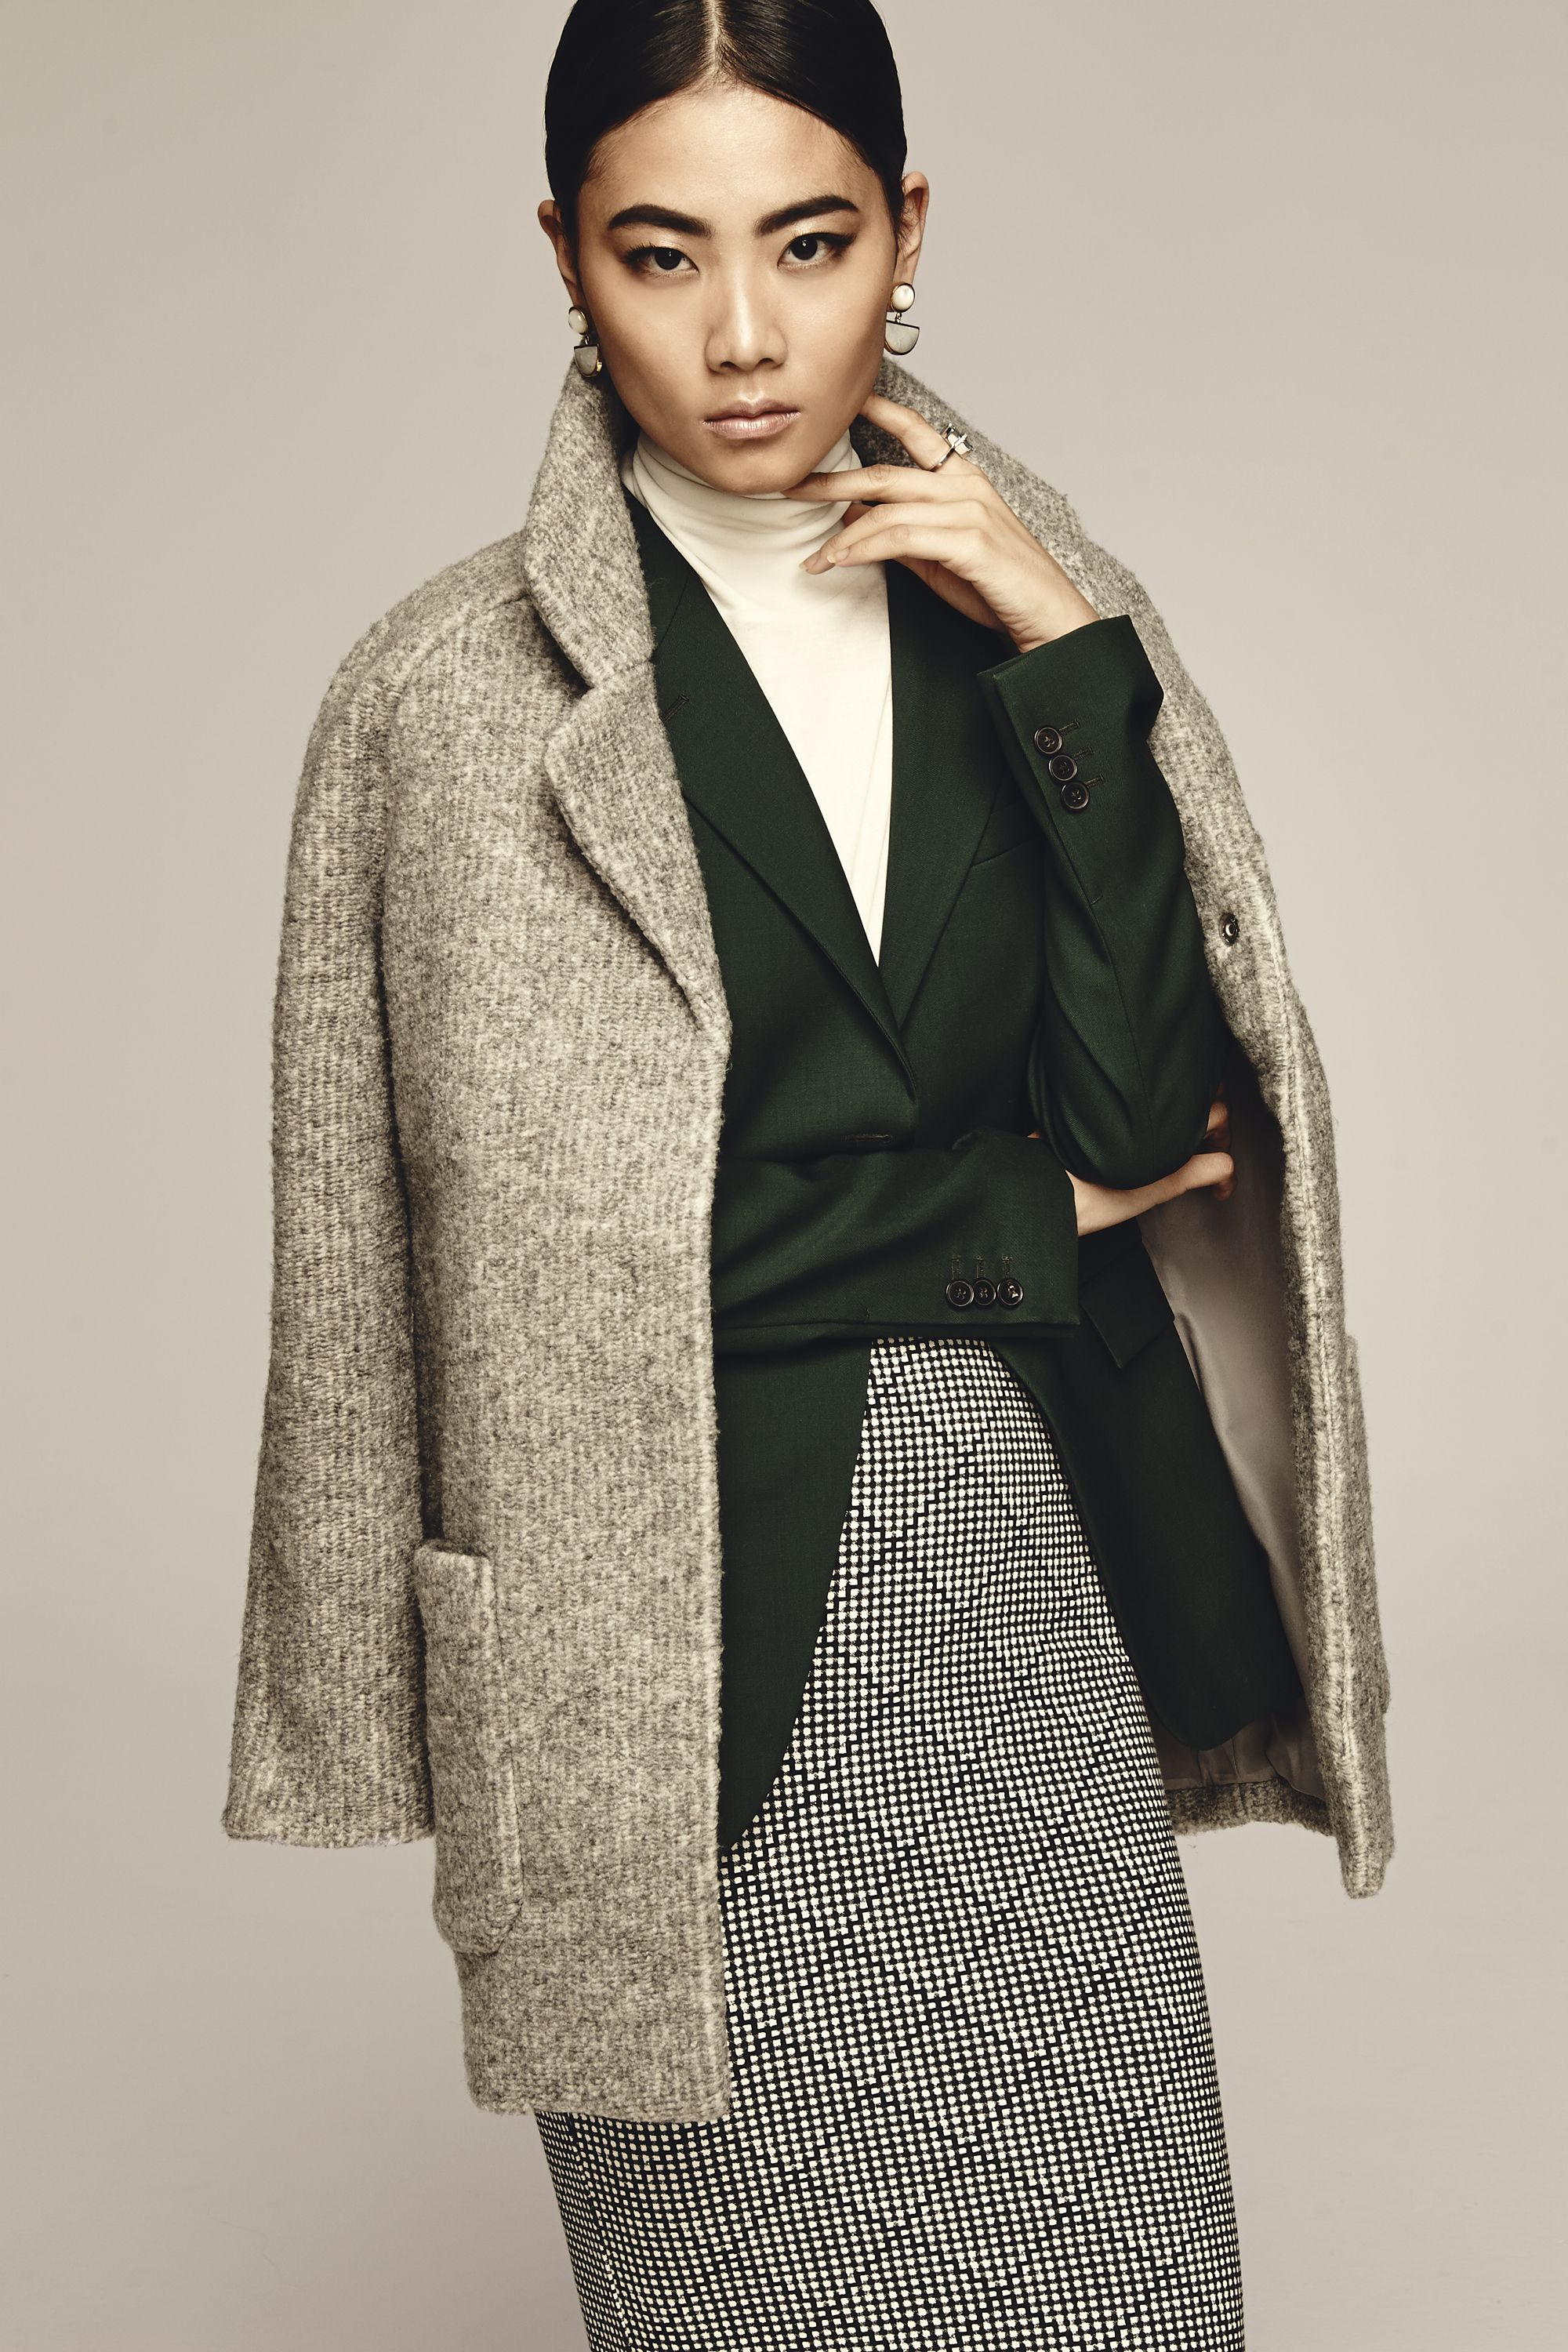 """<p>Sure, it's the cool way to wear a coat these days (thanks, street style stars!), but there's another benefit to lazily throwing your coat over your shoulders: You can show off a fitted blazer underneath.</p><p>Old Navy Textured Cocoon Coat, $75, <a href=""""http://oldnavy.gap.com/browse/category.do?cid=55474"""" target=""""_blank"""">oldnavy.com</a>; Jil Sander Blazer, $1,910, <a href=""""http://store.jilsander.com/us/jil-sander/jacket_cod41581379fx.html"""" target=""""_blank"""">store.jilsander.com</a>; Equipment Oscar Turtleneck Sweater, $320, <a href=""""https://www.net-a-porter.com/product/598043/Equipment/oscar-cashmere-turtleneck-sweater"""" target=""""_blank"""">net-a-porter.com</a>; Old Navy Patterned Midi Pencil Skirt, $10, <a href=""""https://ad.doubleclick.net/ddm/clk/296862303;123822729;k"""" target=""""_blank"""">oldnavy.com</a>; Efva Attling Bend Over Ring, $8,500, <a href=""""http://www.efvaattling.com/bend-over-ring-gold-aquamarine-diamonds/p/1427"""" target=""""_blank"""">efvaattling.com</a>; Lizzie Fortunato Geometry Earrings, $300, <a href=""""http://www.neimanmarcus.com/Lizzie-Fortunato/Designers/cat52710755/c.cat"""" target=""""_blank"""">www.neimanmarcus.com</a></p>"""